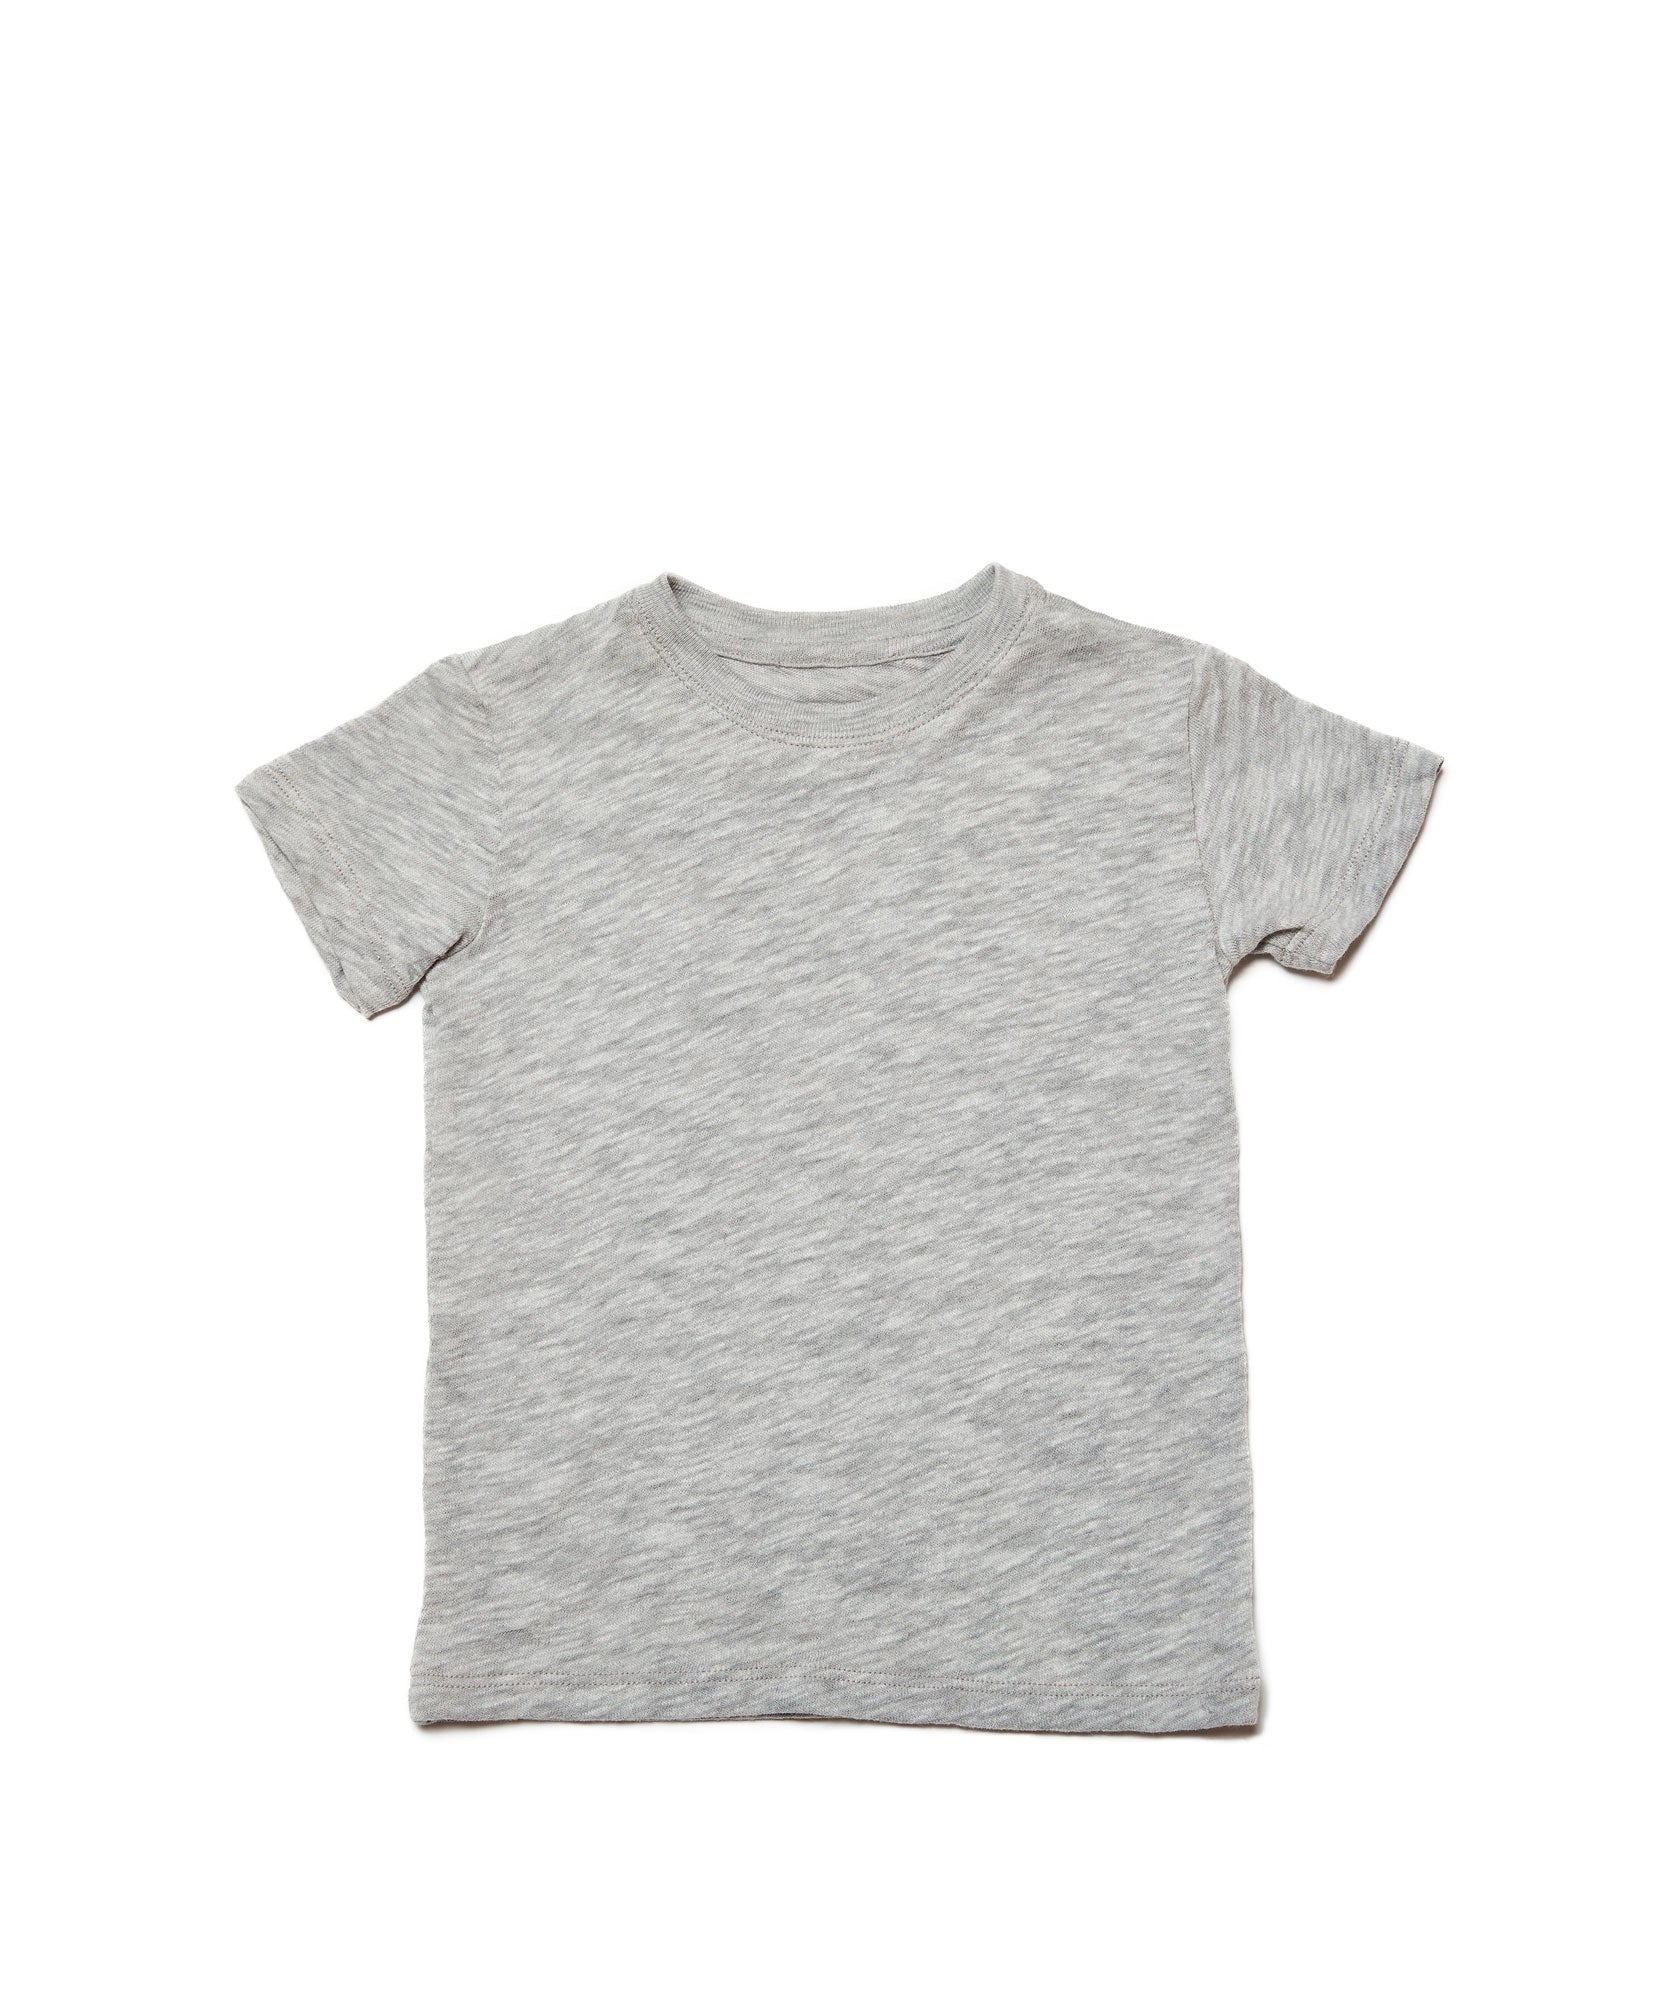 Heather Grey Kids Slub Jersey Short Sleeve Tee - Kid's Cotton Short Sleeve Tee by ATM Anthony Thomas Melillo